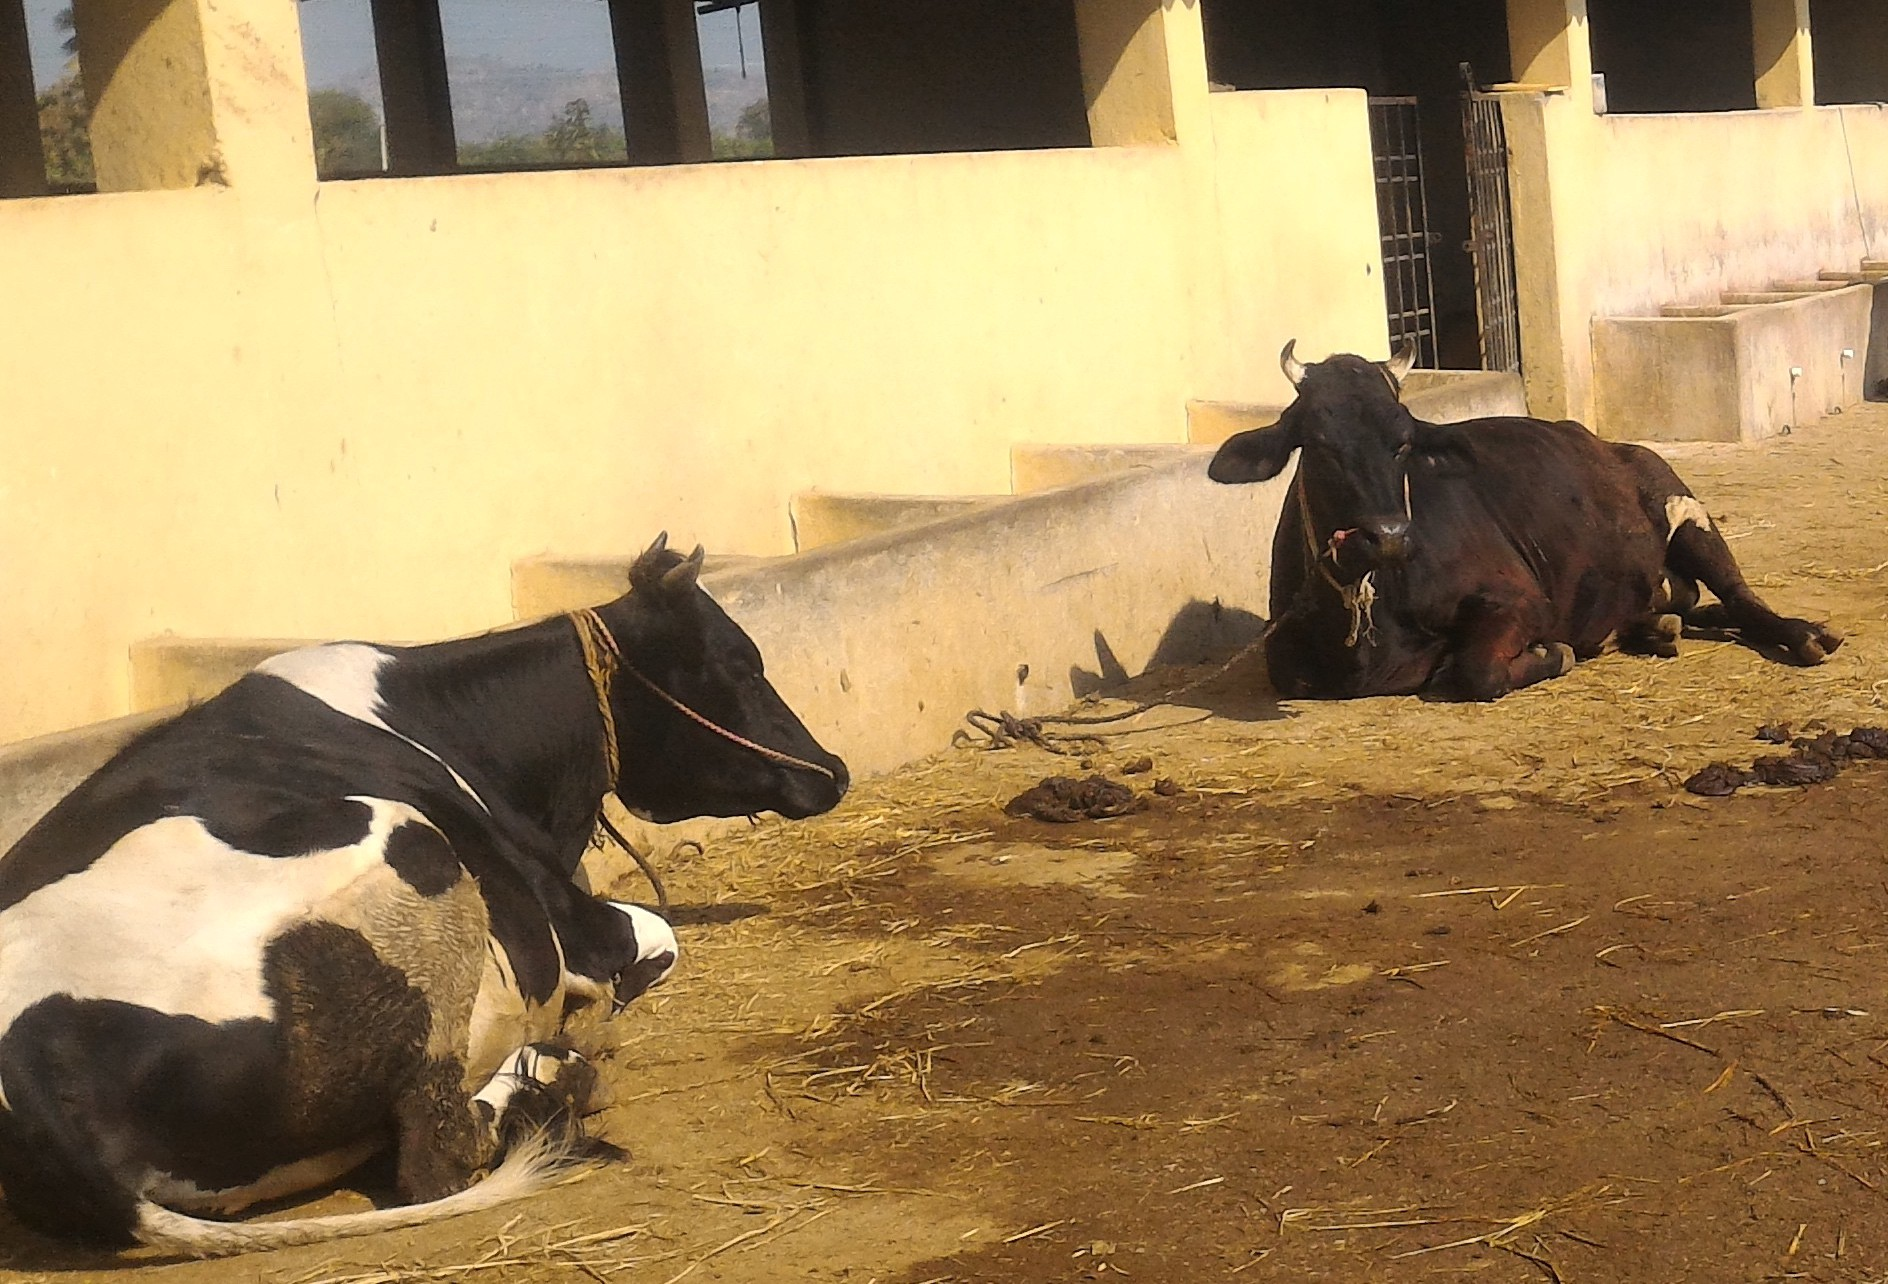 Family regularly bathes in cow dung to avoid skin diseases